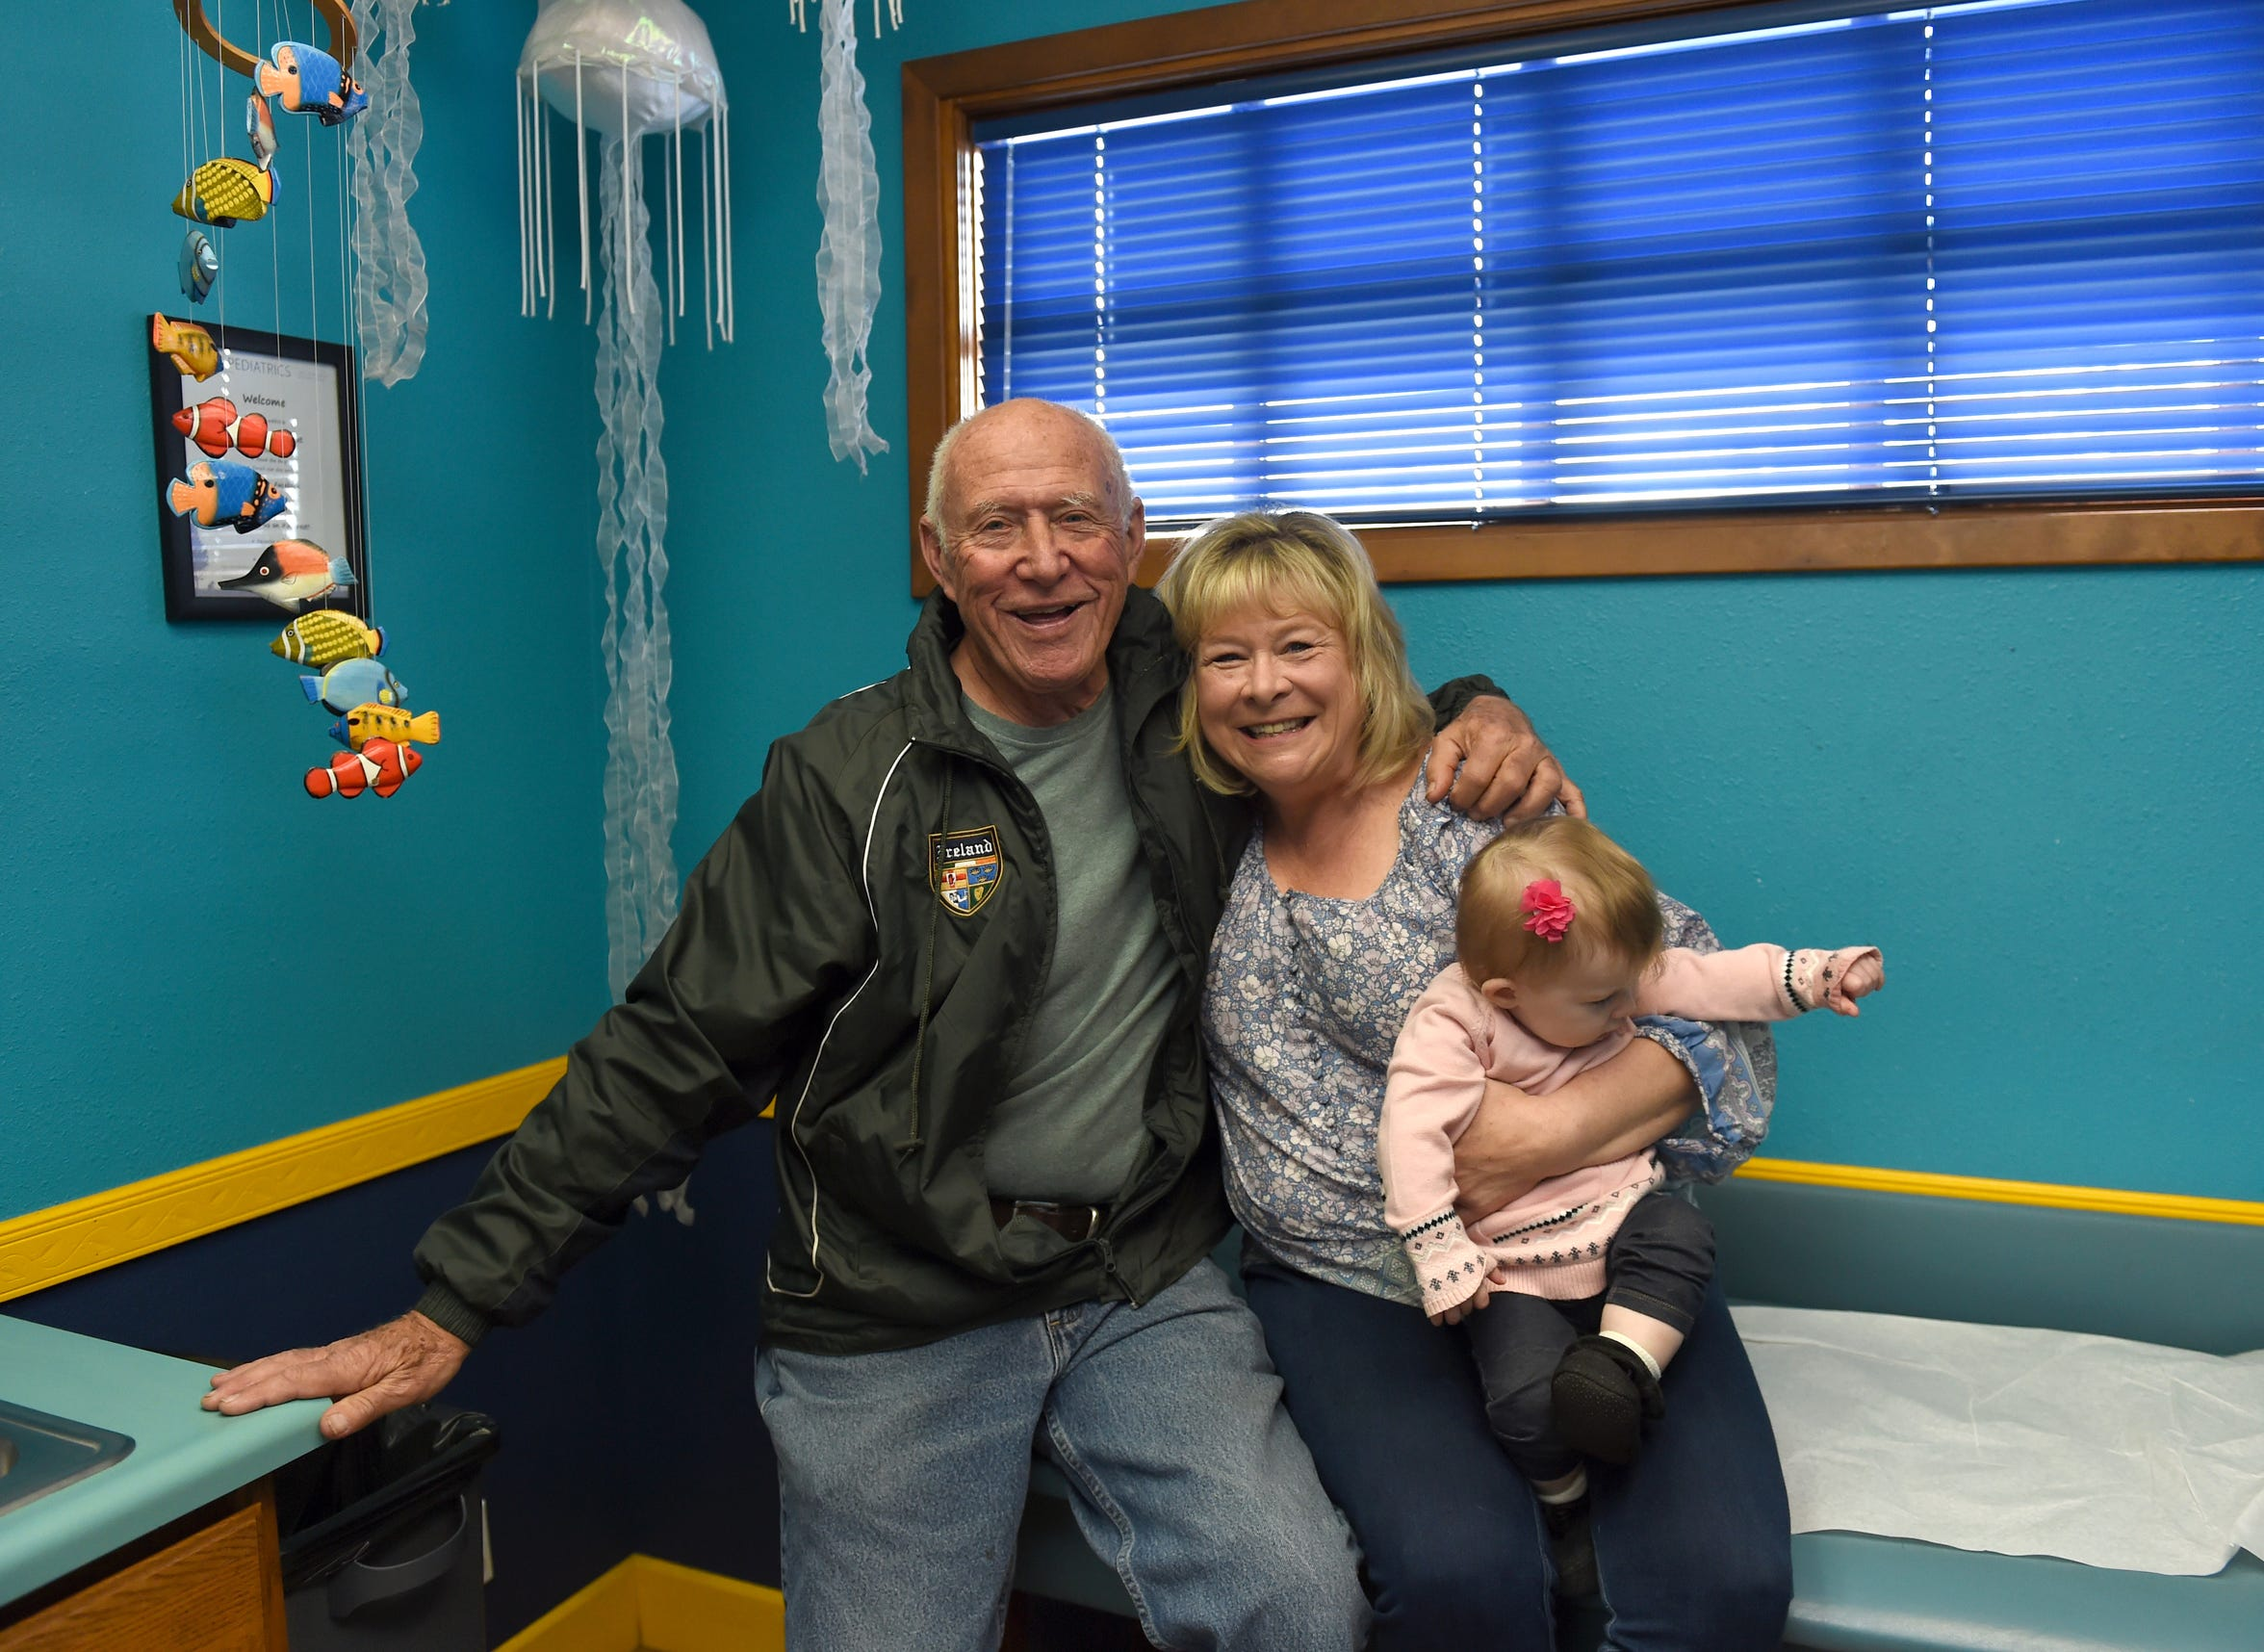 Dr. Patrick Colletti poses for a photo with his long-time nurse Jane Prescott, who is holding her granddaughter Blair Gutierrez, 10 months. The three are at Aspen Pediatrics in Reno. Colletti is retiring after 50 years of working to keep children healthy in Northern Nevada.